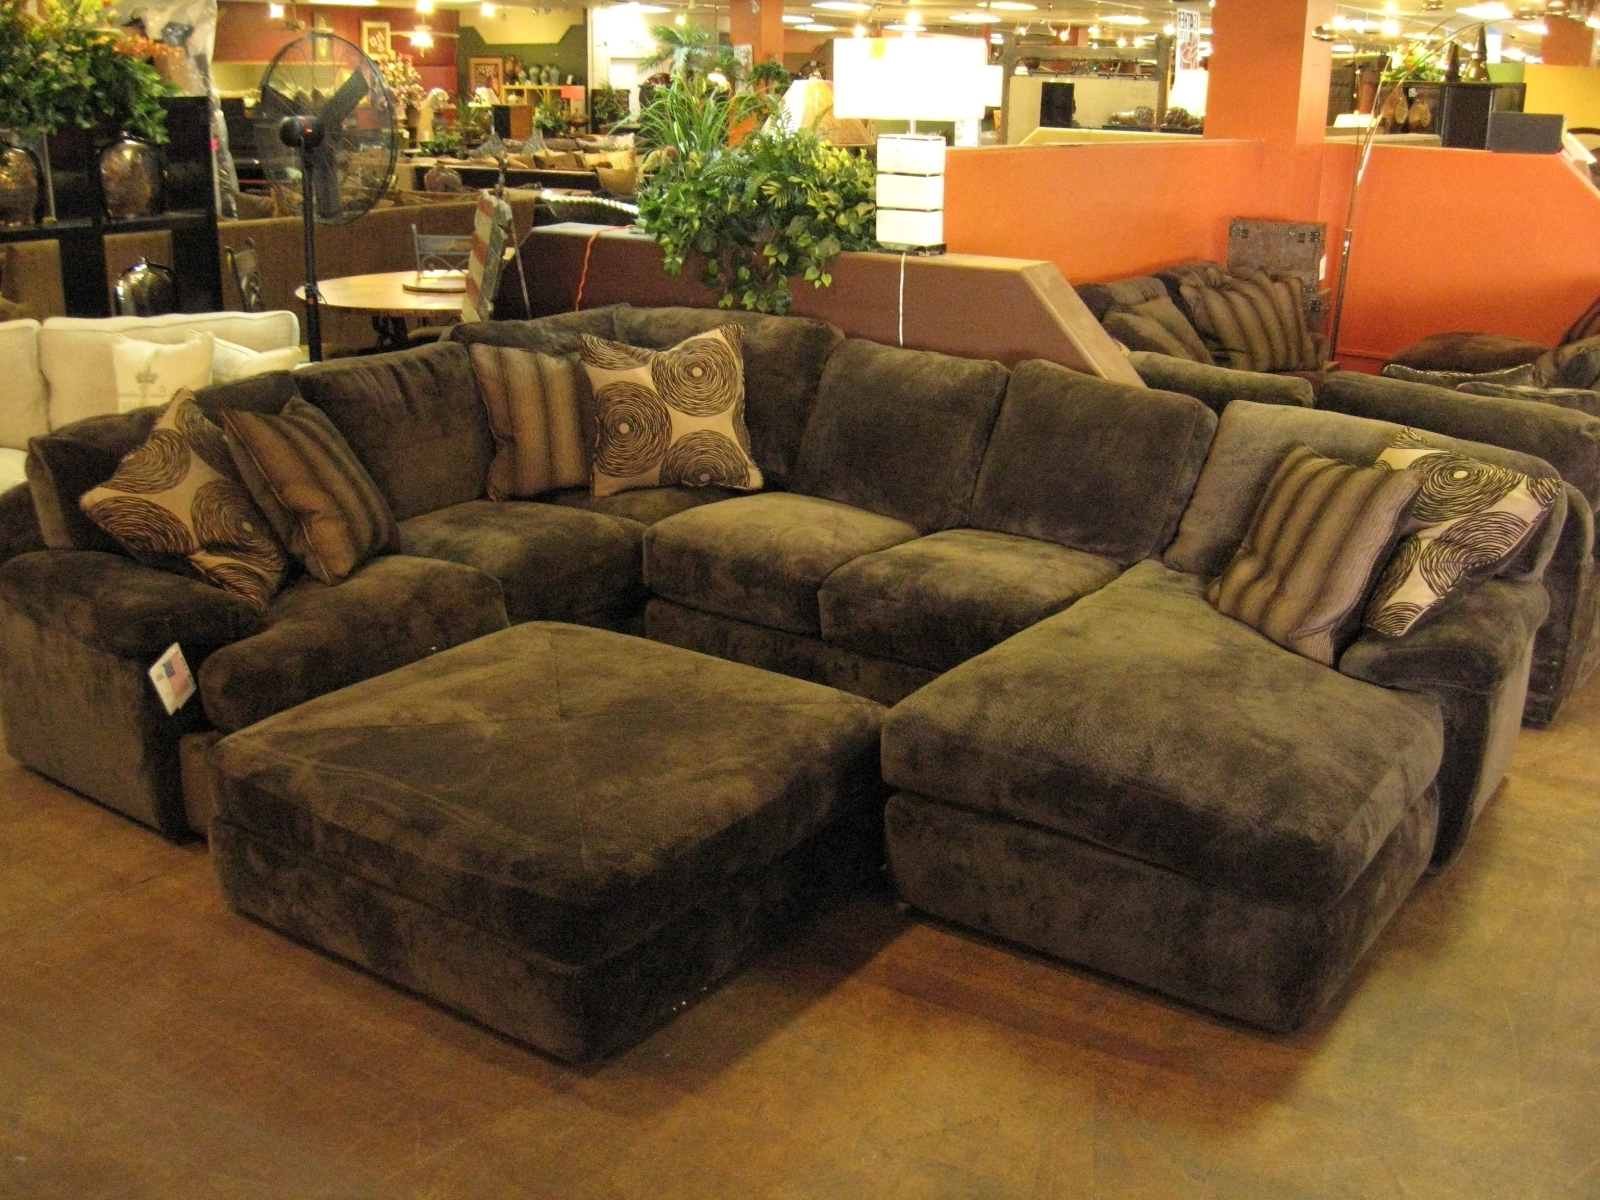 Costco Sectional $999 Ethan Allen Lamps Modern Furniture Warehouse Intended For Recent Greensboro Nc Sectional Sofas (View 5 of 15)